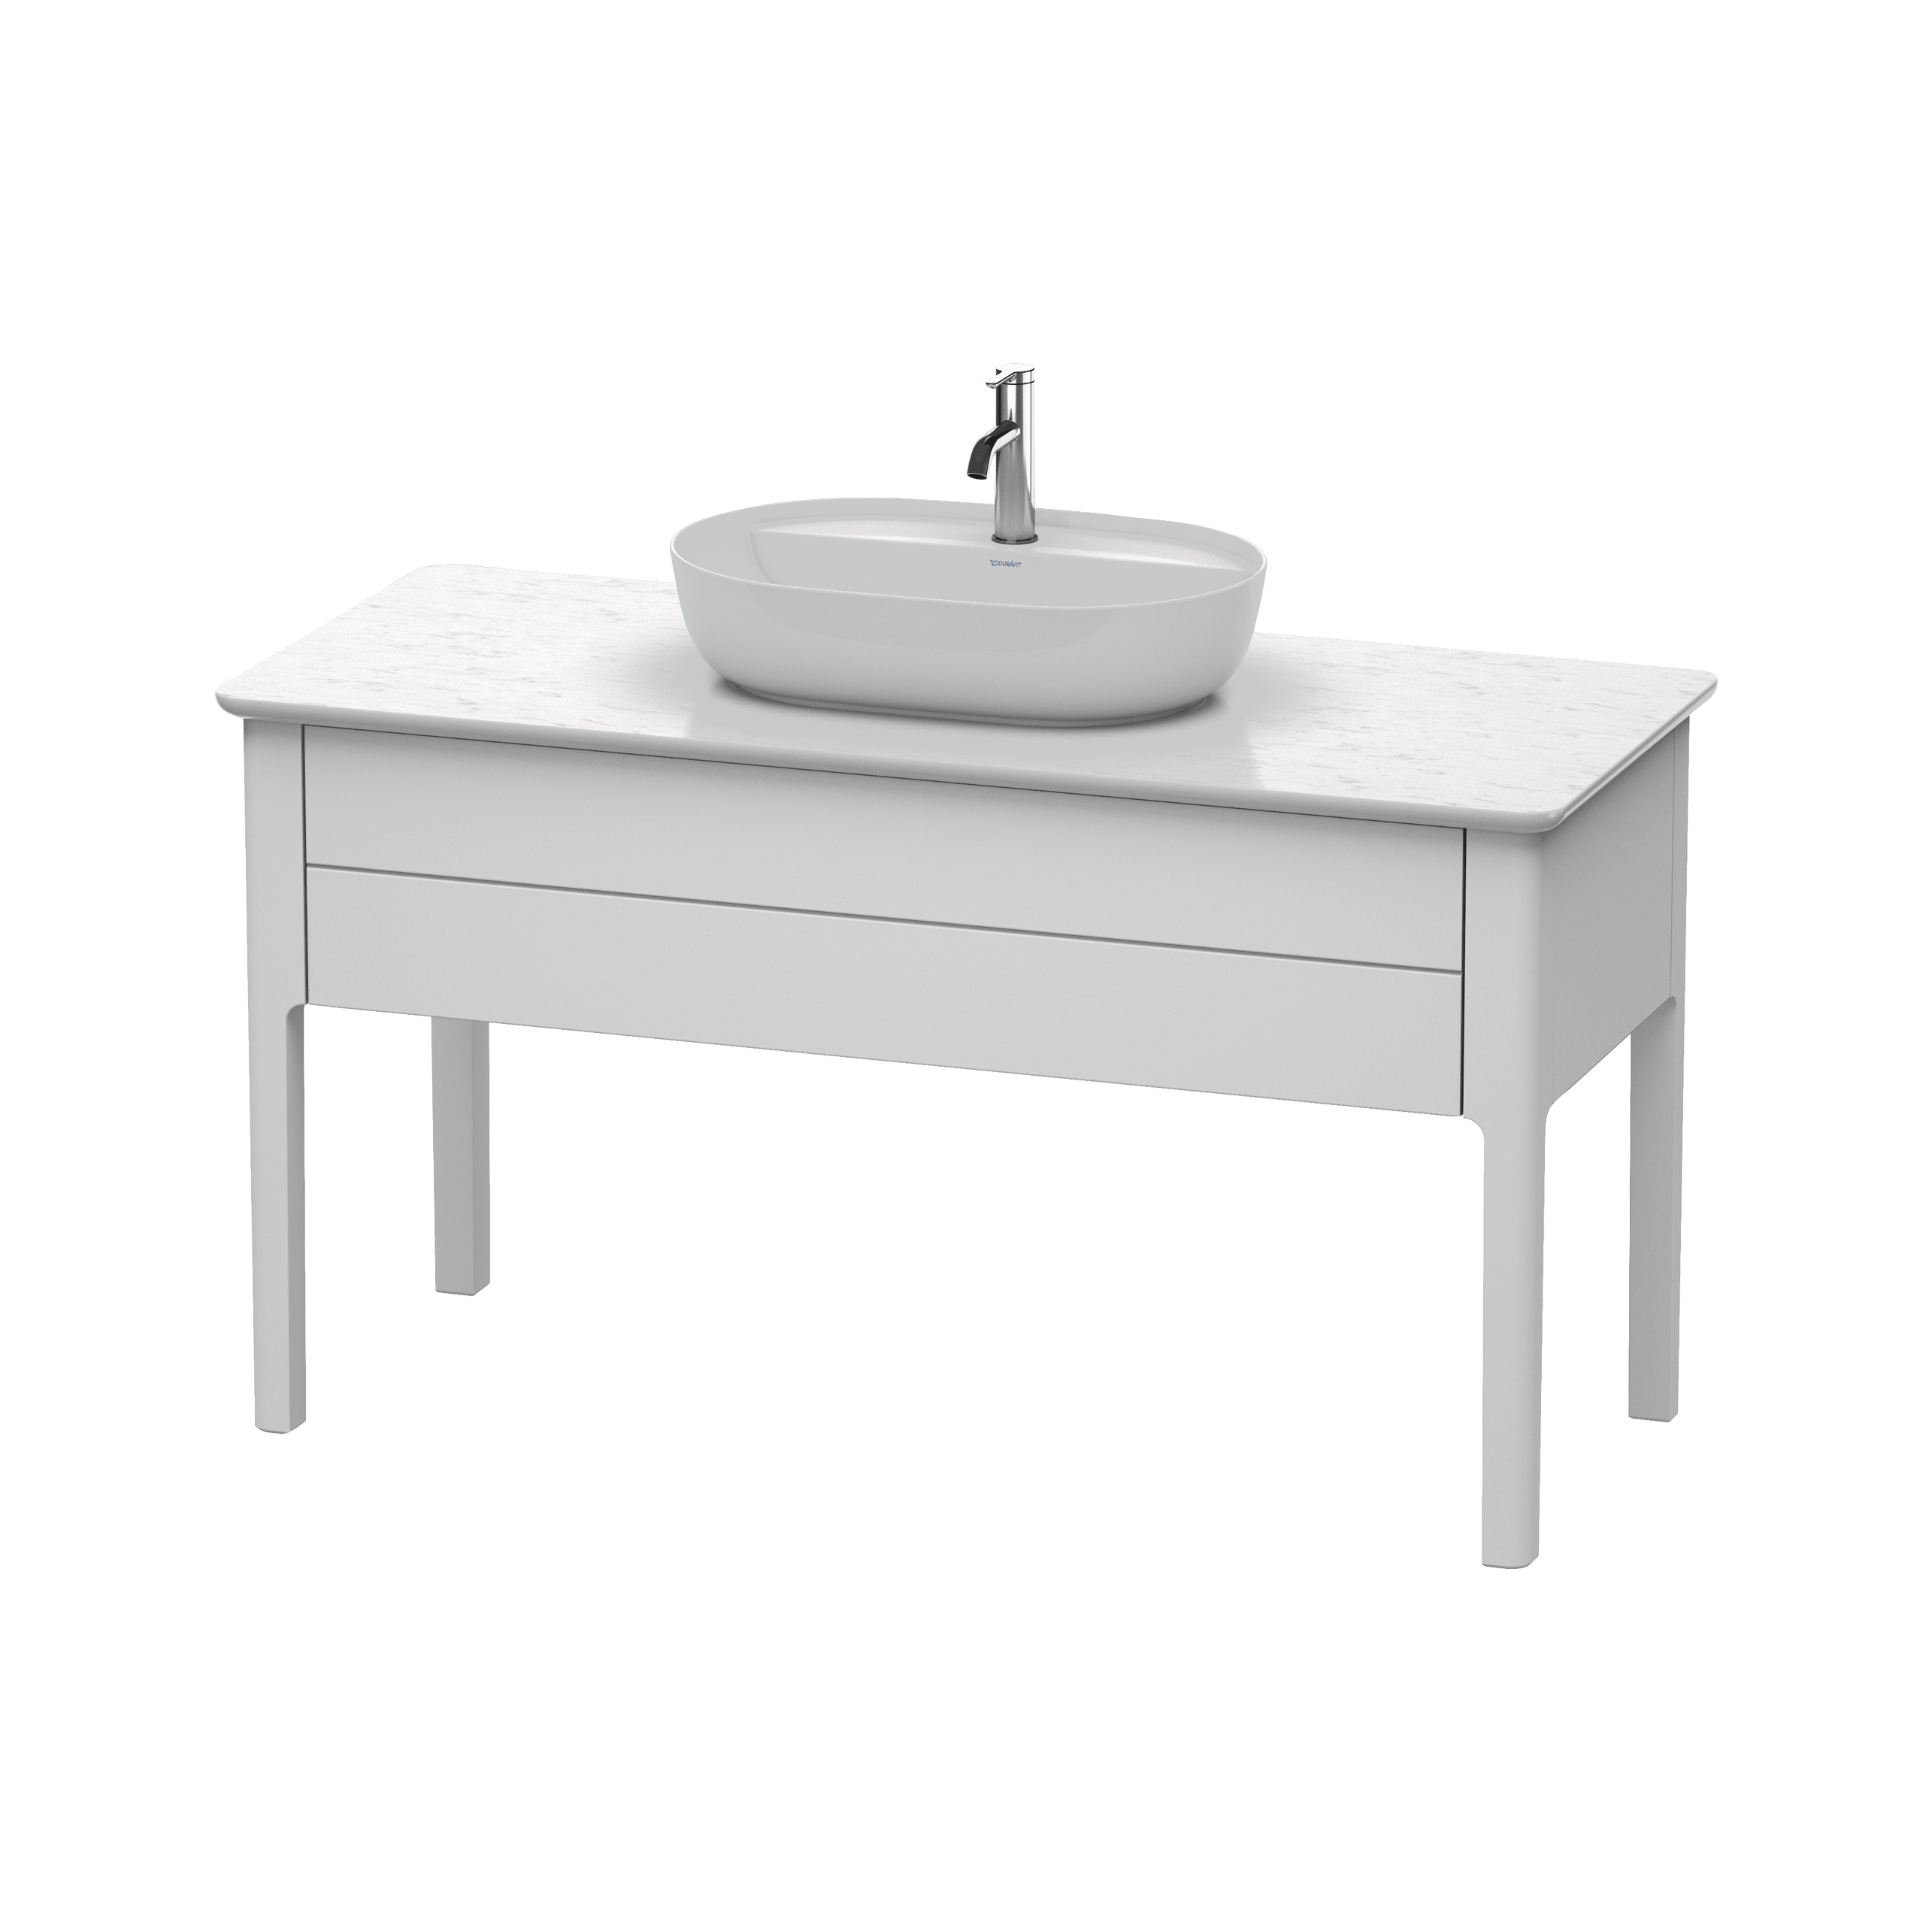 collections wash basin from highlights by drain latest bathroom duravit sink above design happy basins foster pedestal and counter discover vero sizes